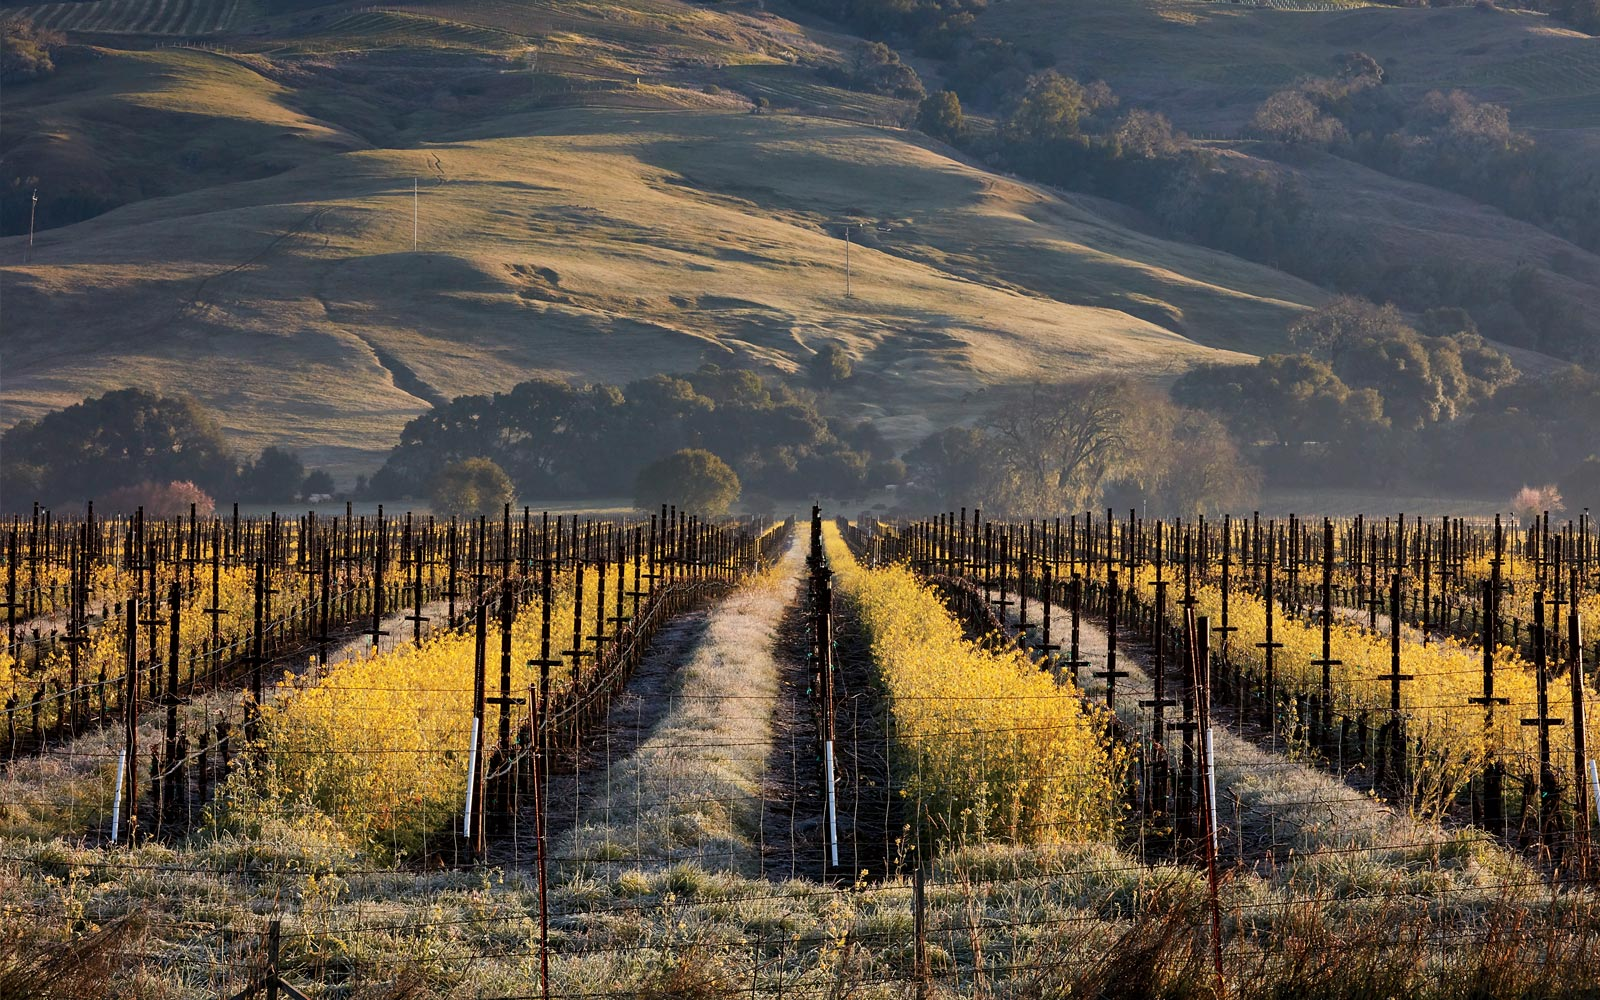 A vineyard in Anderson Valley, California